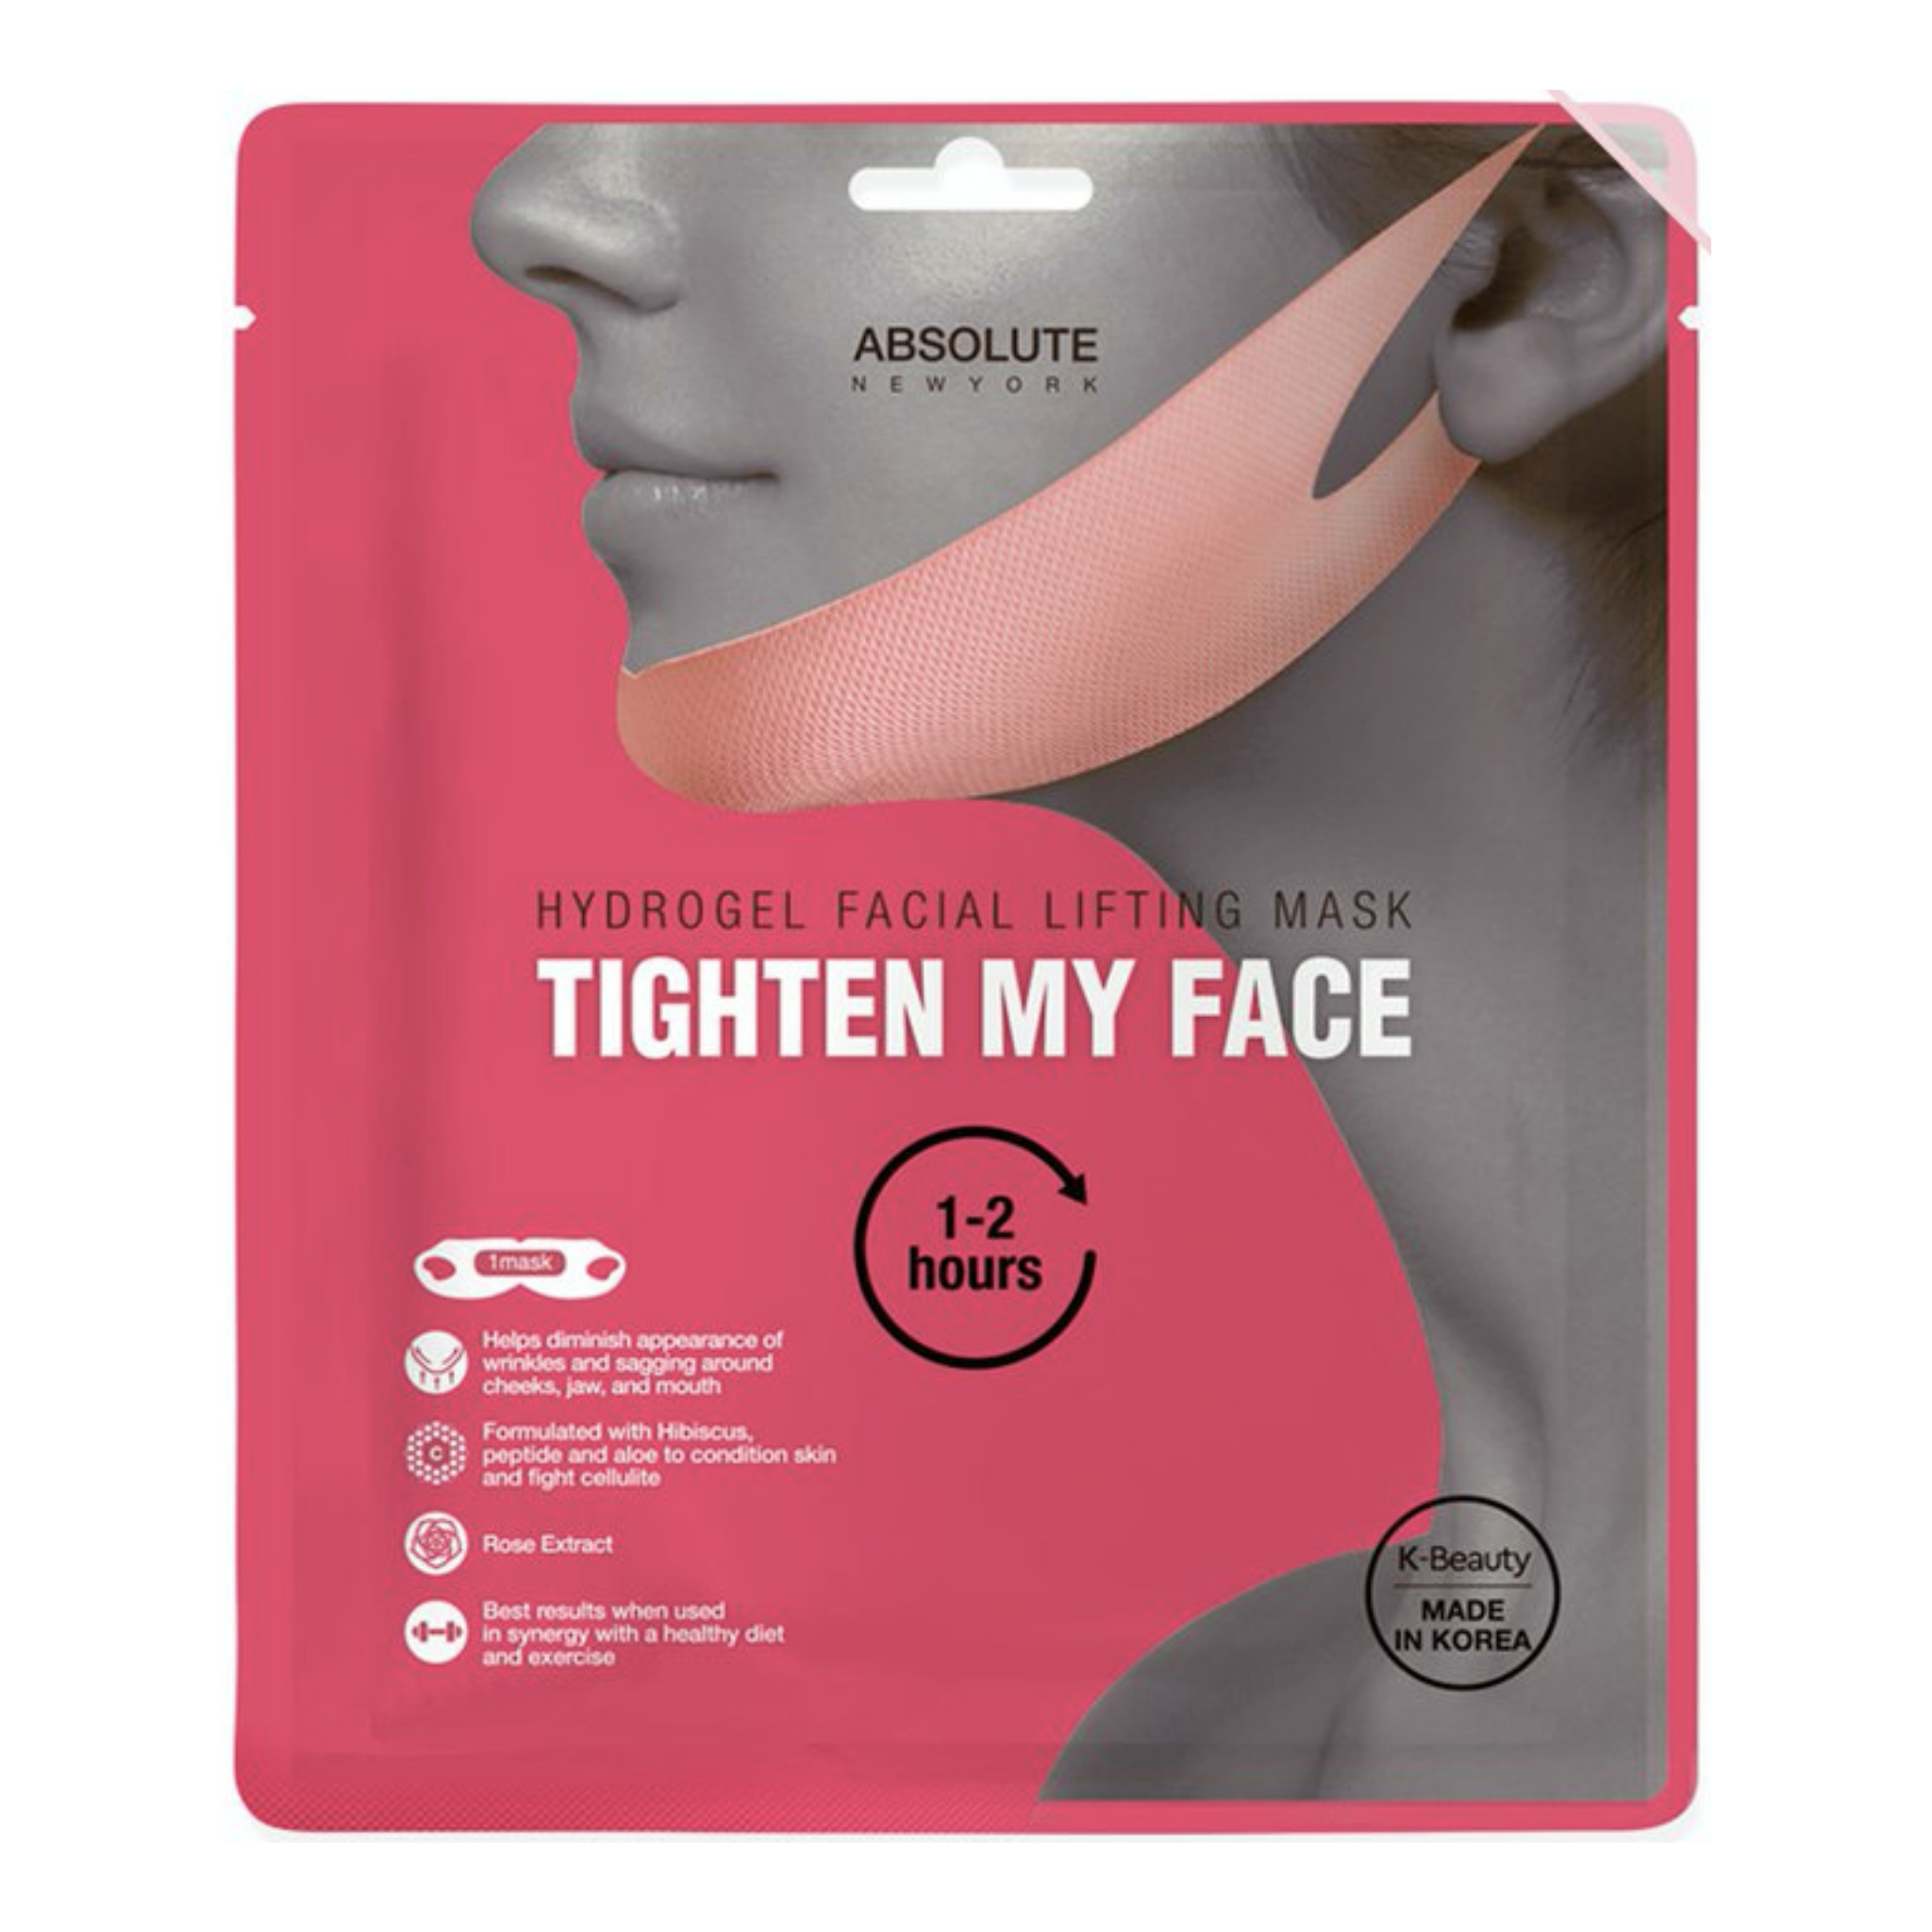 HYDROGEL FACIAL LIFTING MASK | TIGHTEN MY FACE